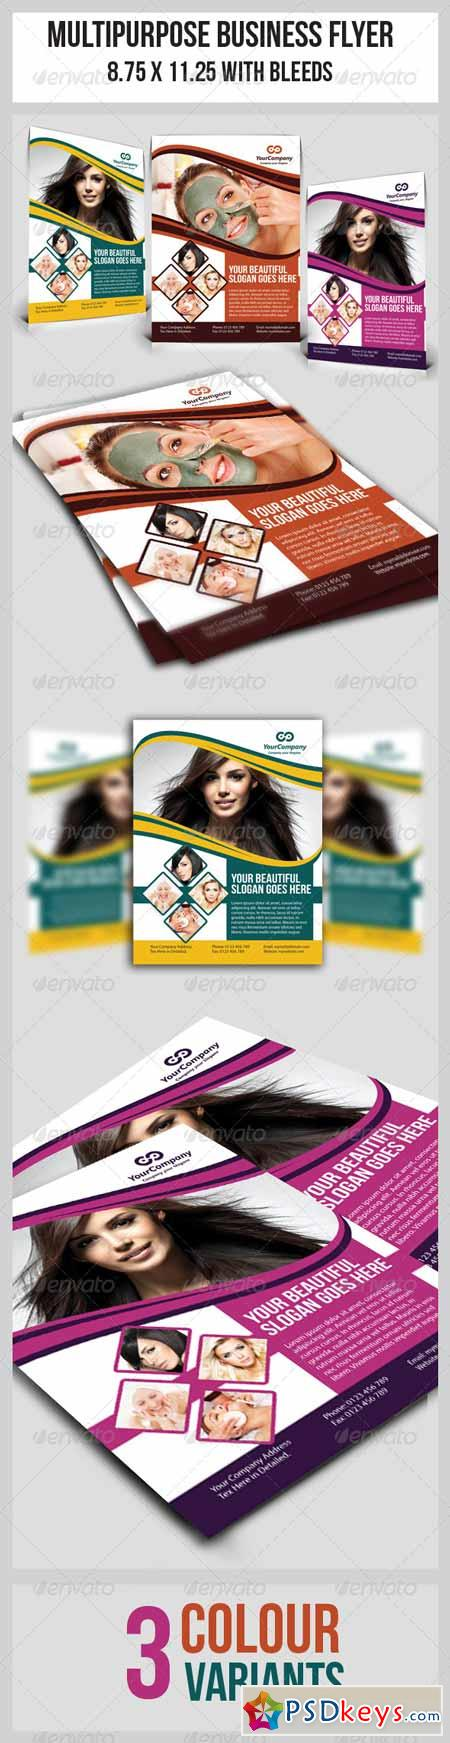 Multipurpose Business Flyer 4257481